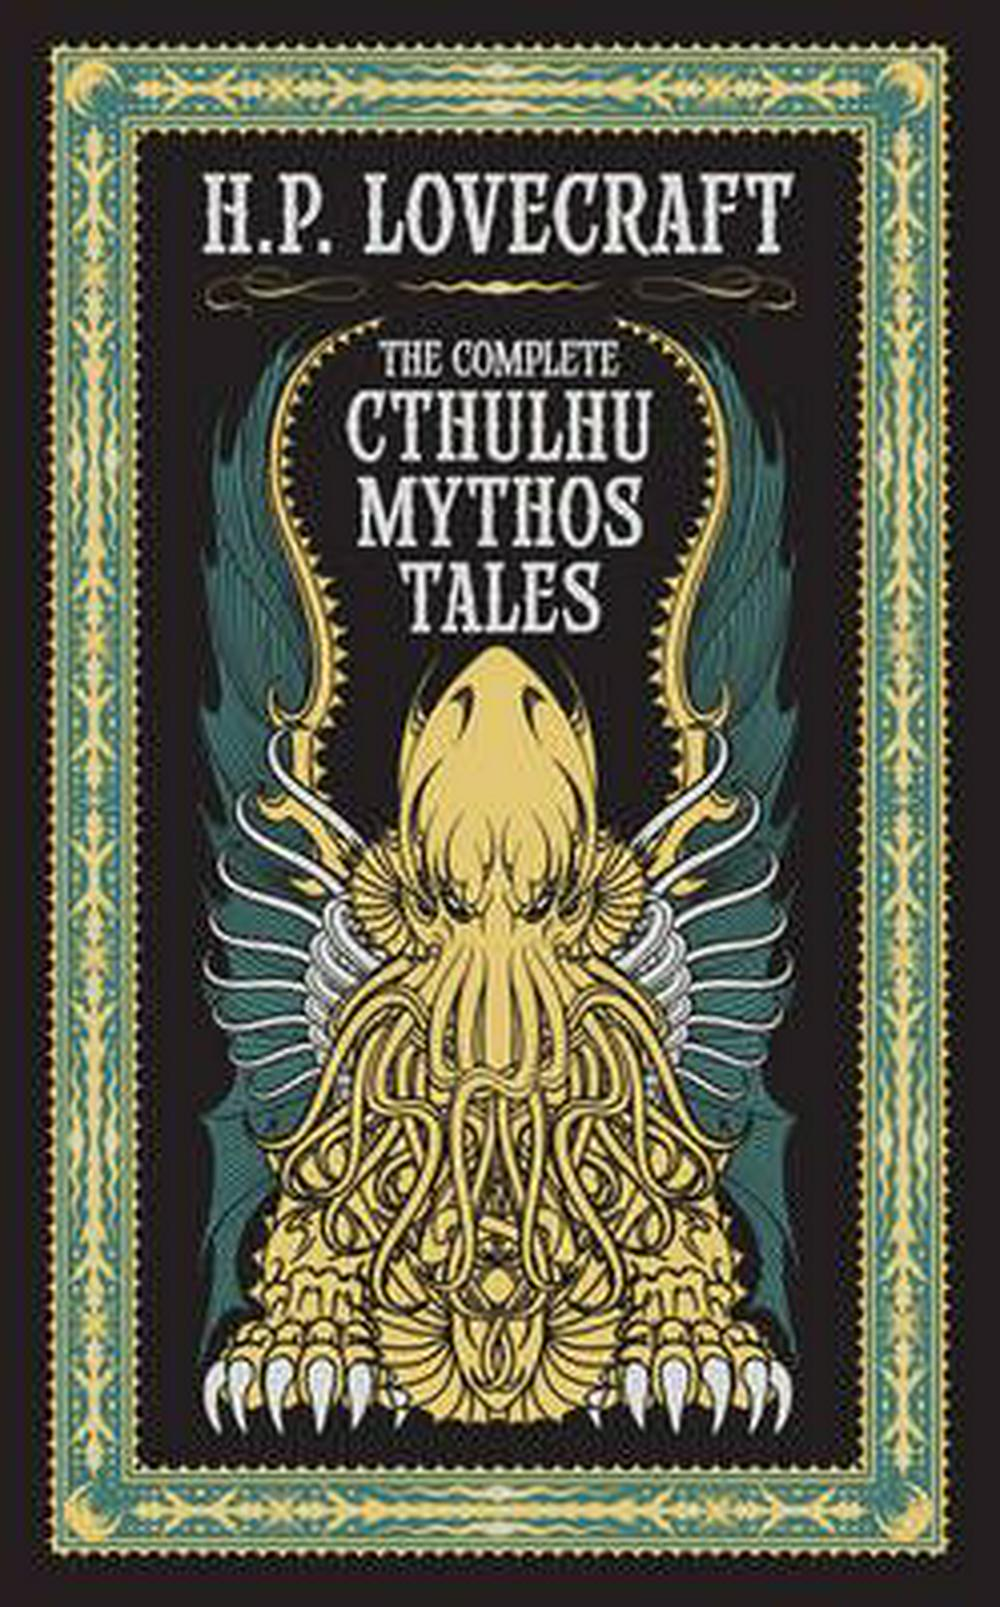 The Complete Cthulhu Mythos TalesBarnes & Noble Leatherbound Classic Collection